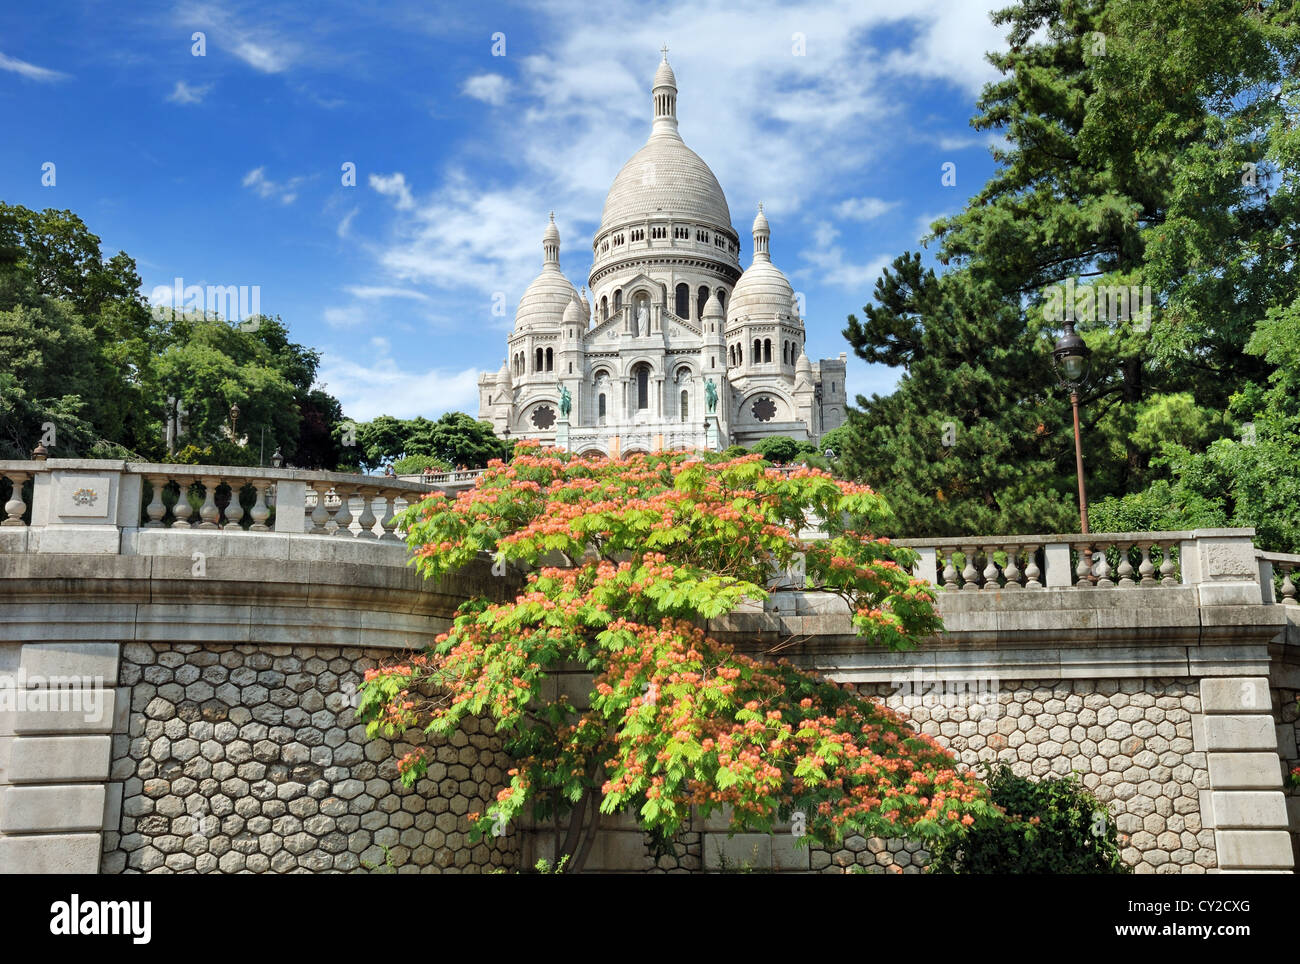 The basilica Sacre Coeur, 'Basilica of the Sacred Heart of Jesus' on Montmartre in Paris, France. - Stock Image